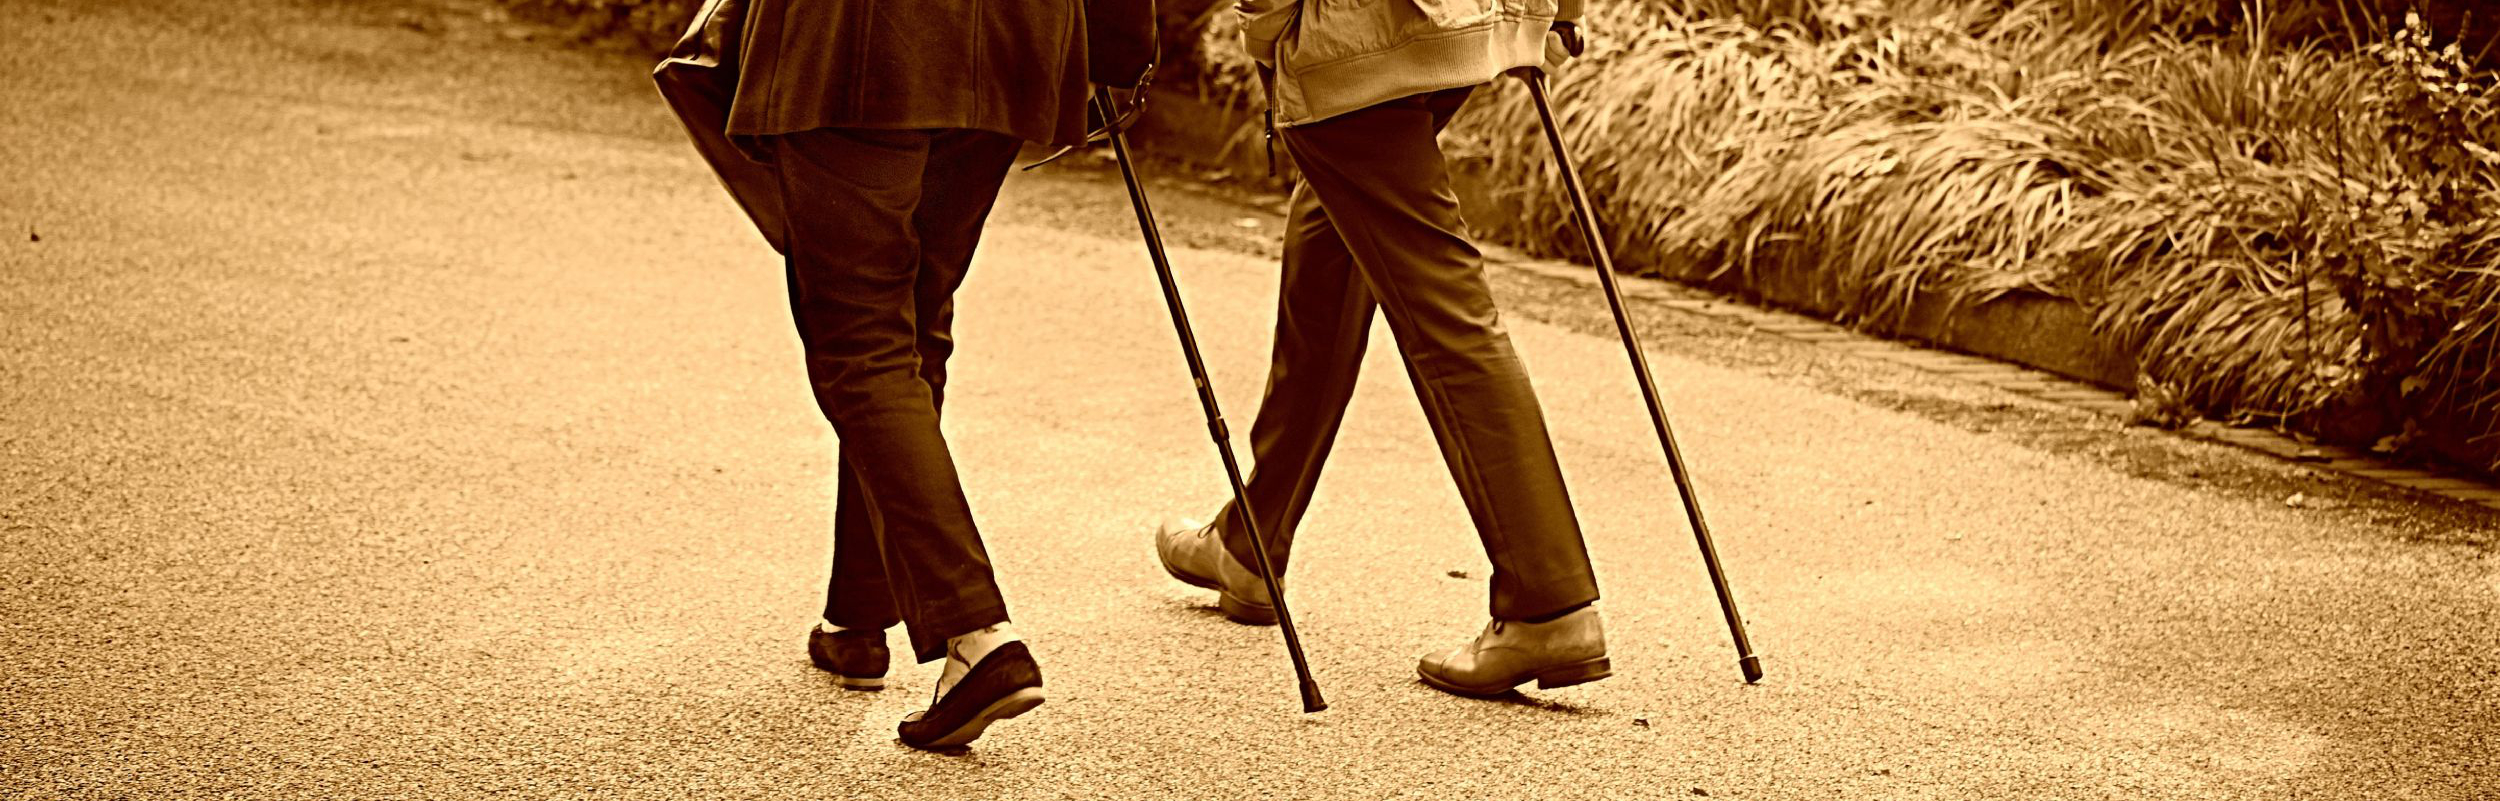 Walking sticks for everyday use